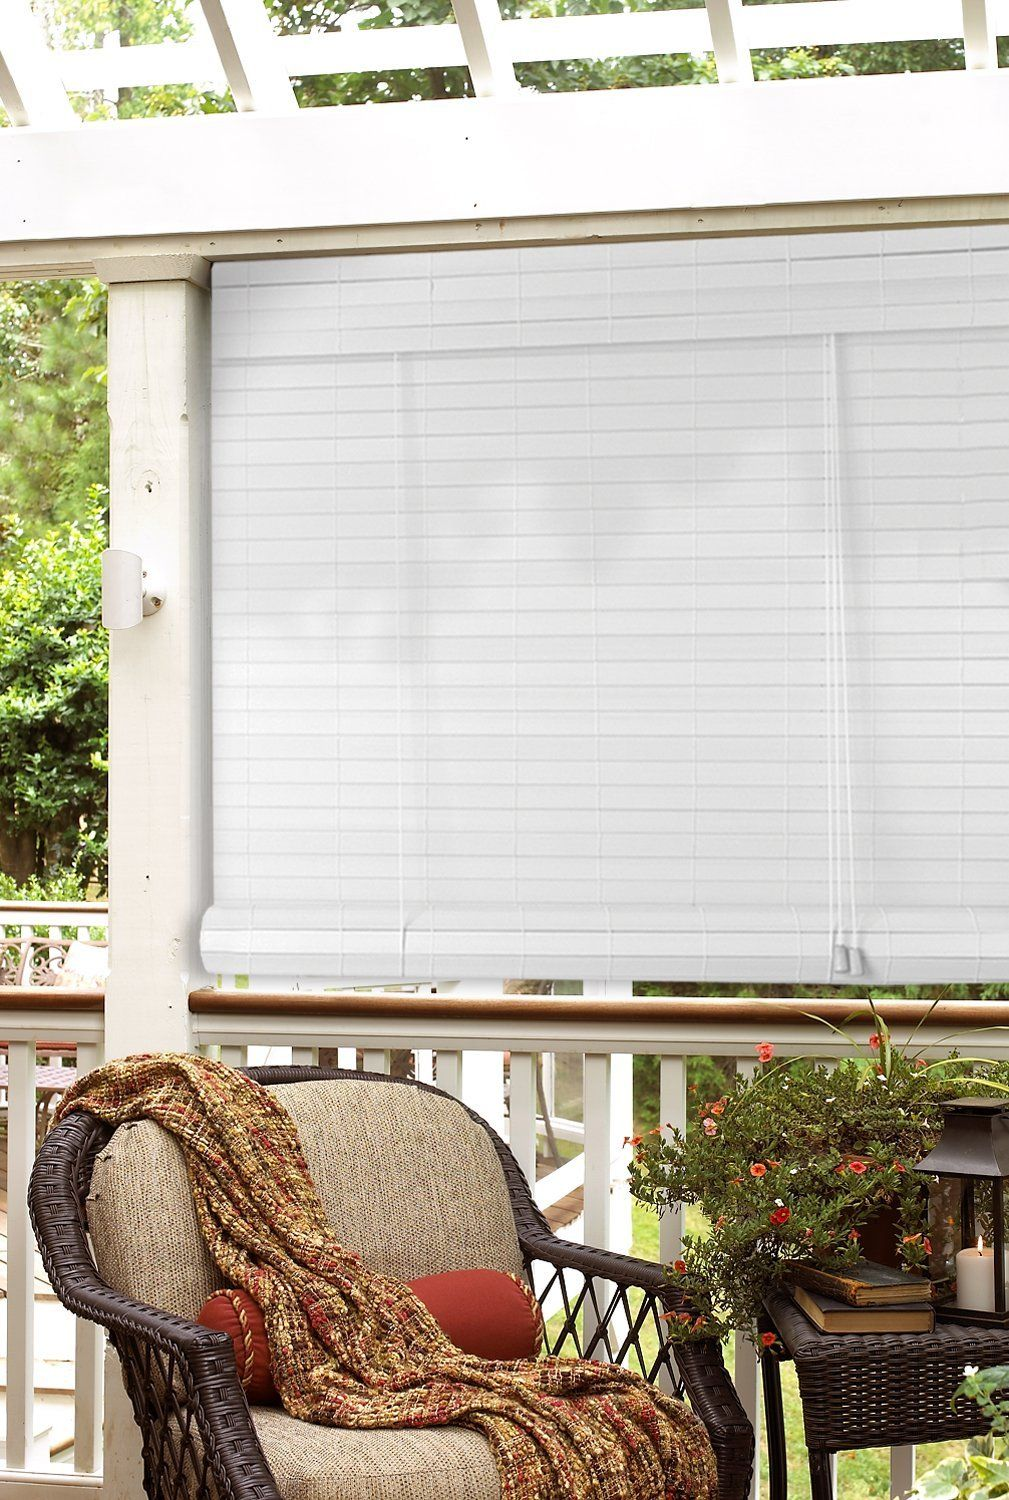 10 best outdoor bamboo blinds images on pinterest bamboo blinds window blinds and window treatments